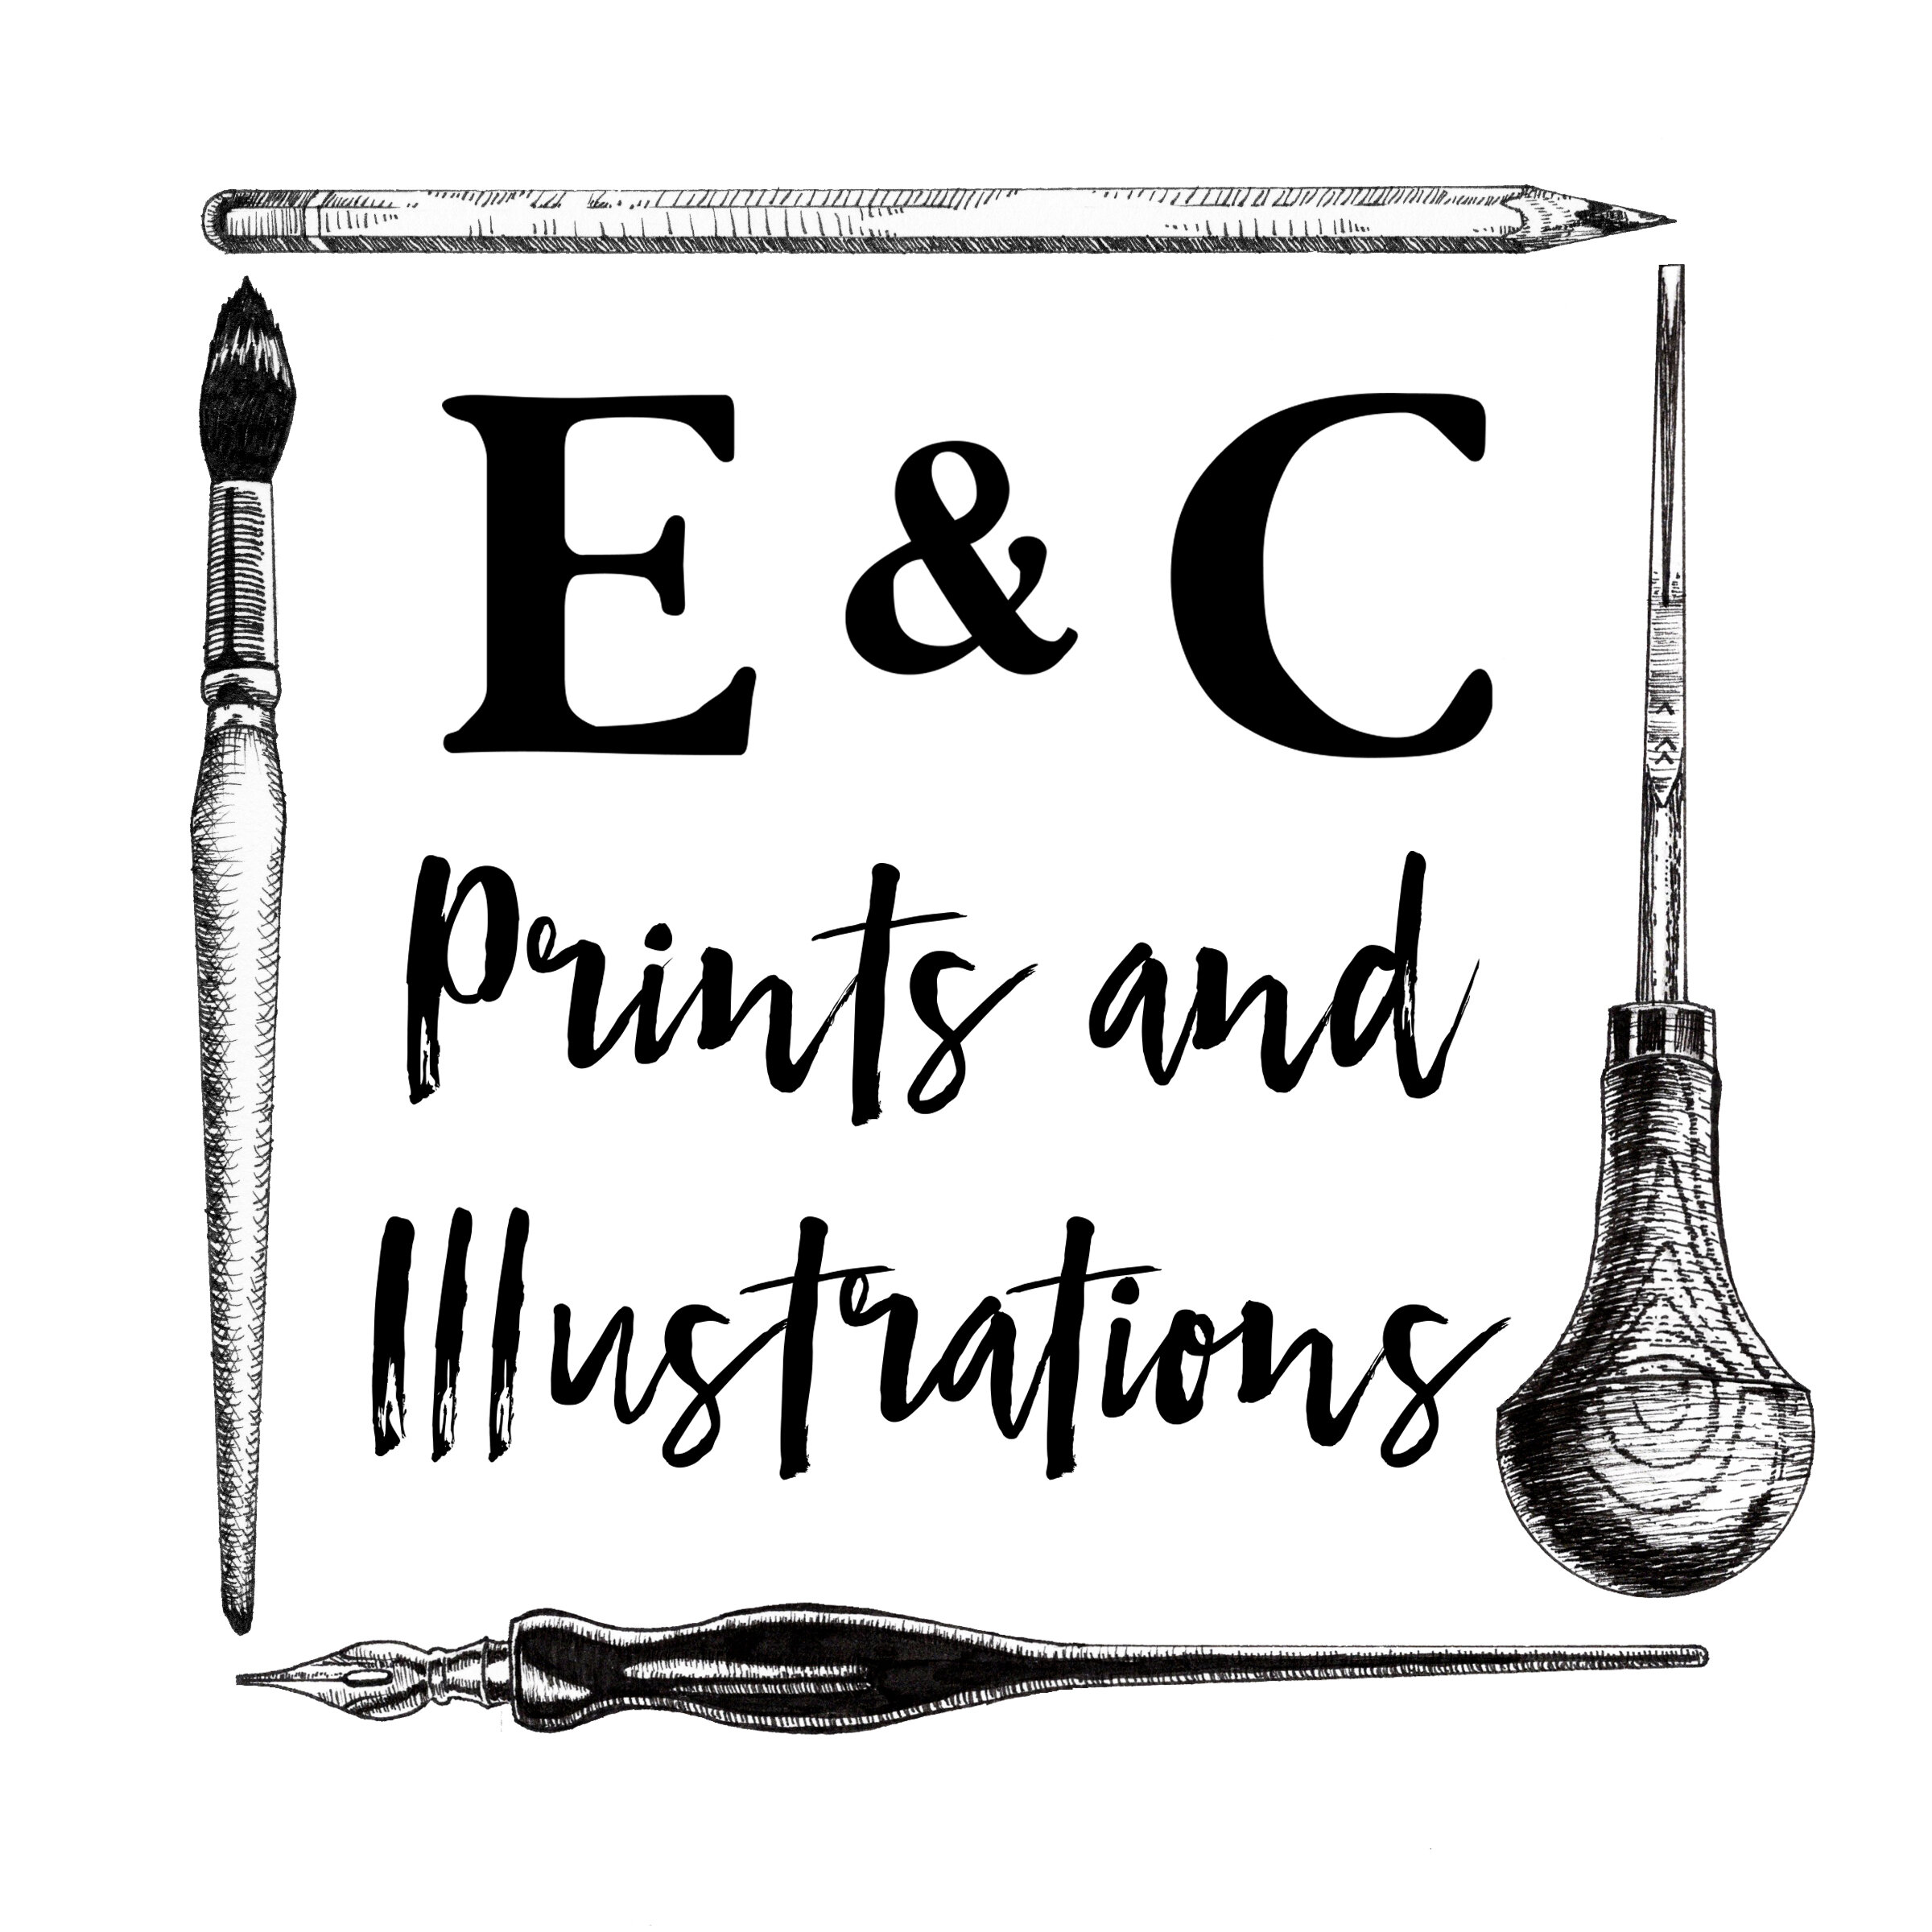 E & C Prints and Illustrations